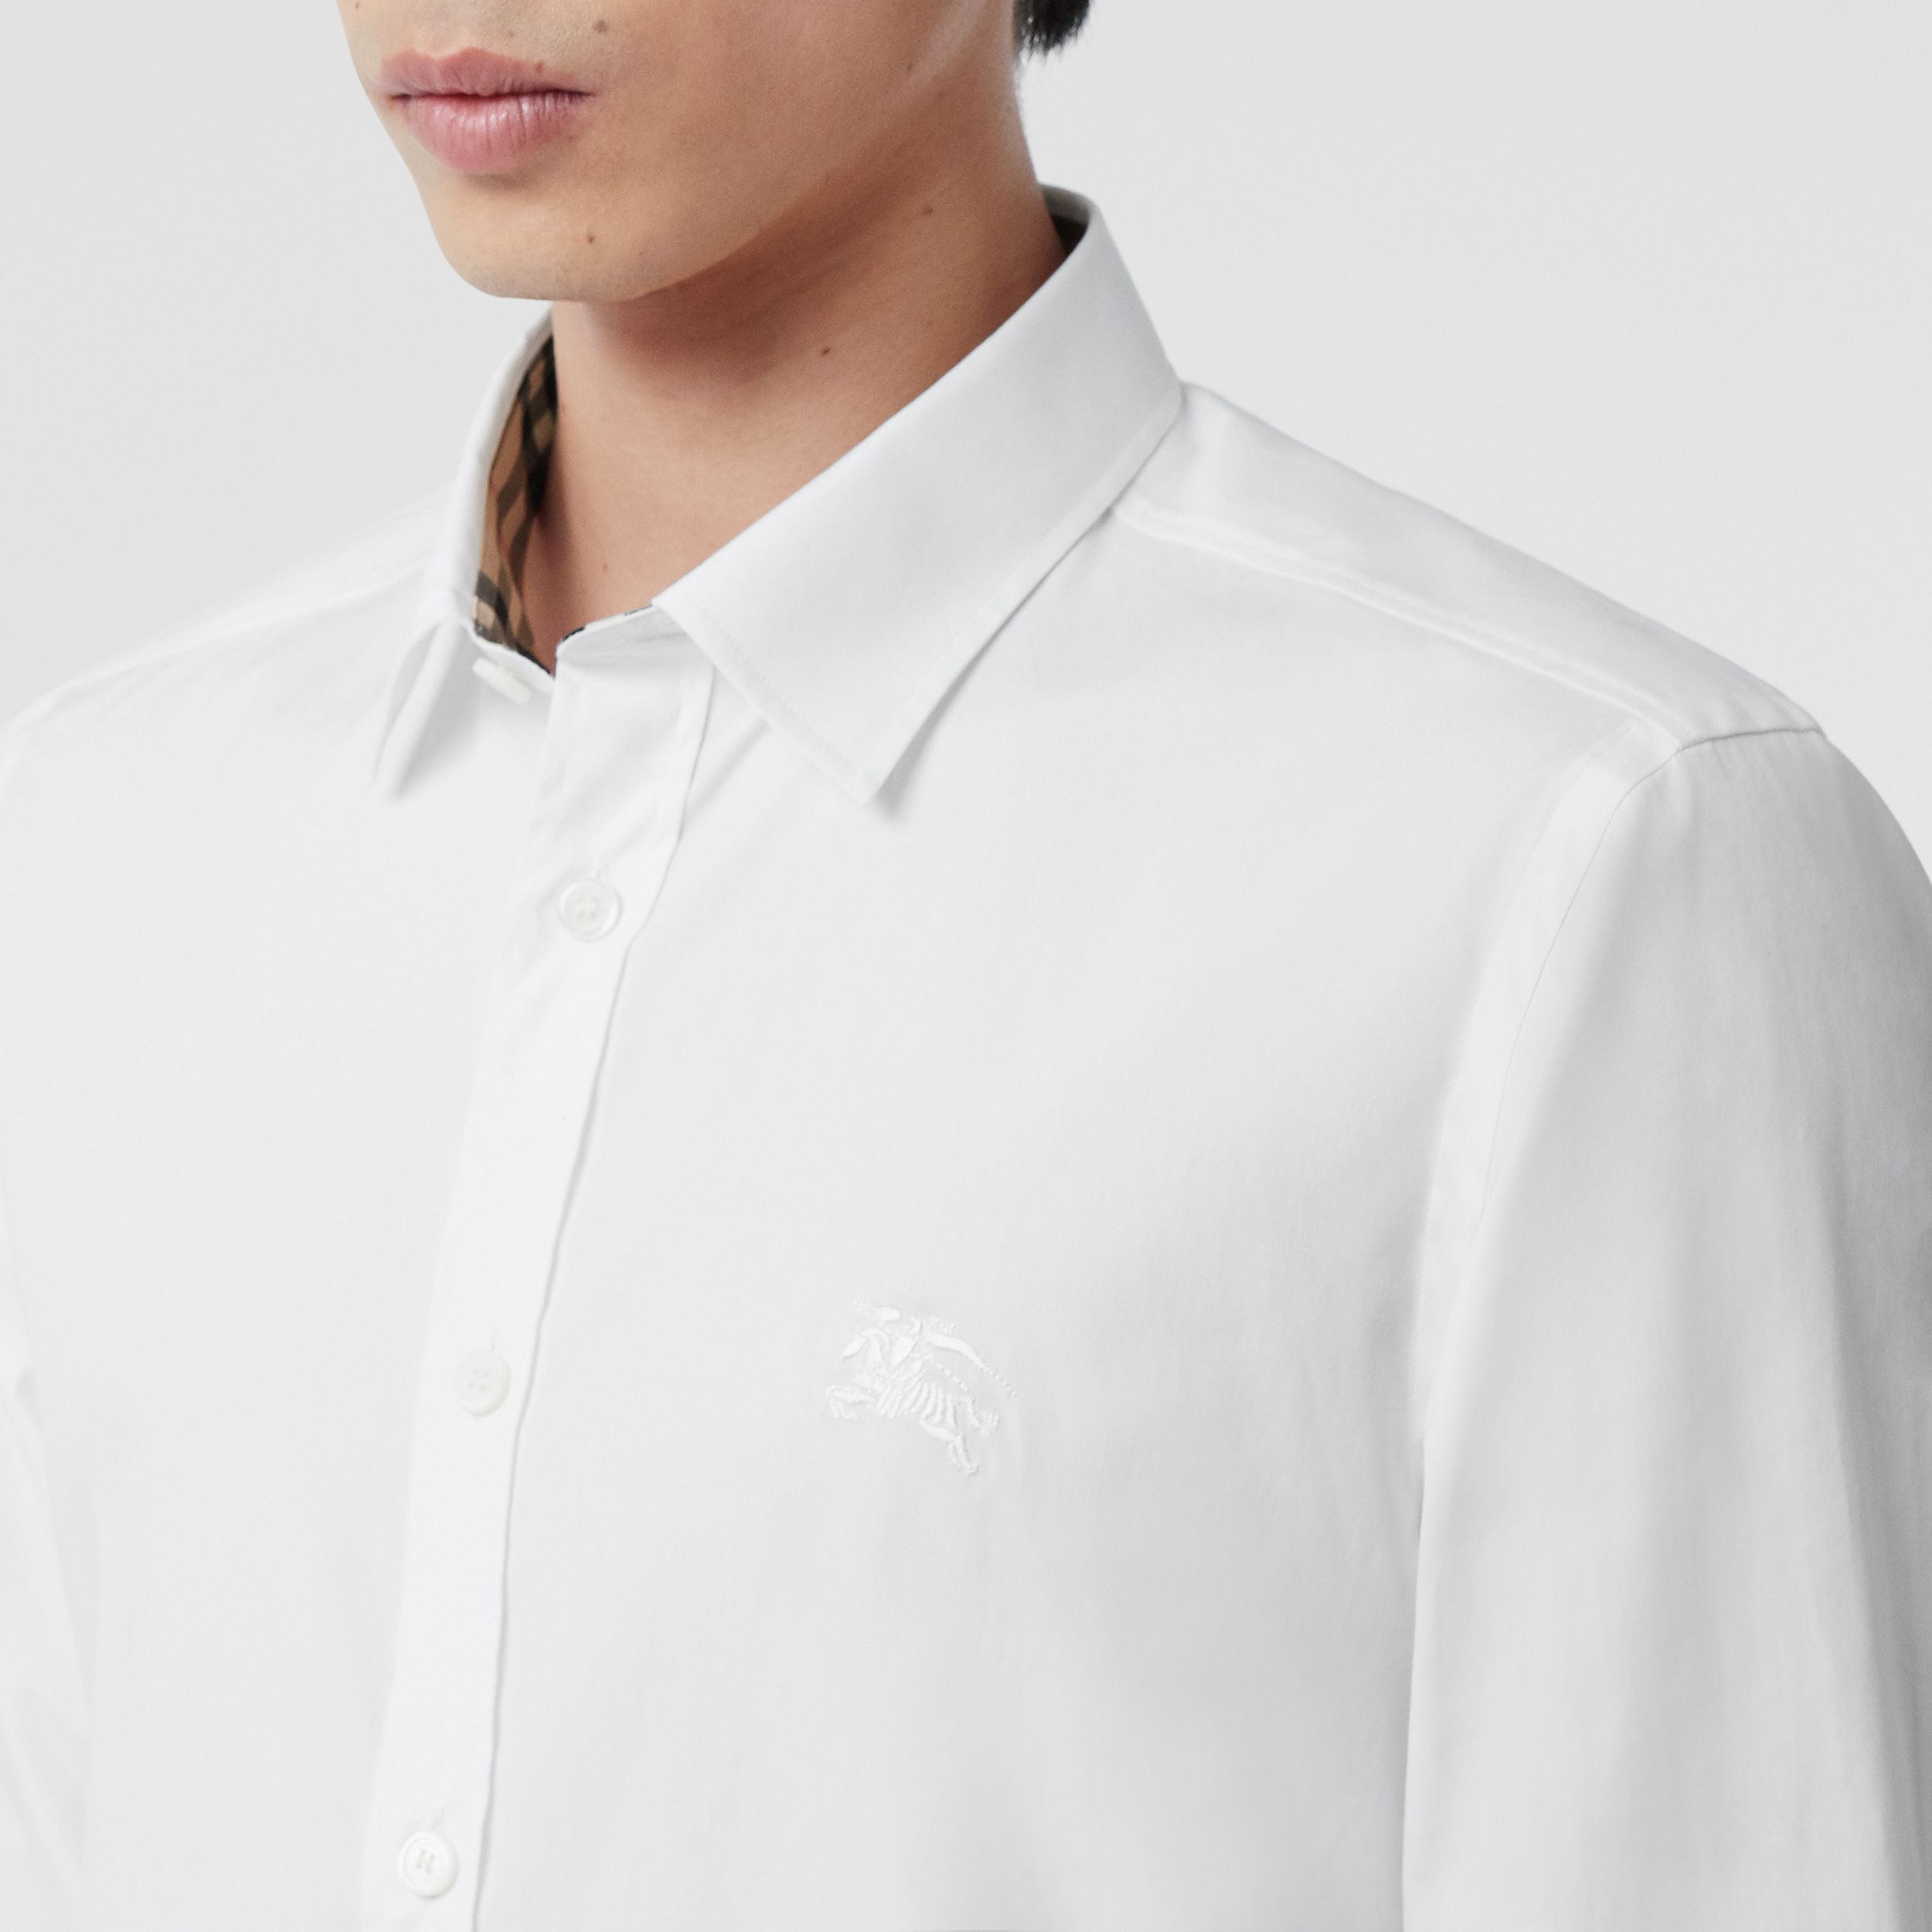 Embroidered EKD Stretch Cotton Poplin Shirt in White - Men | Burberry - 2